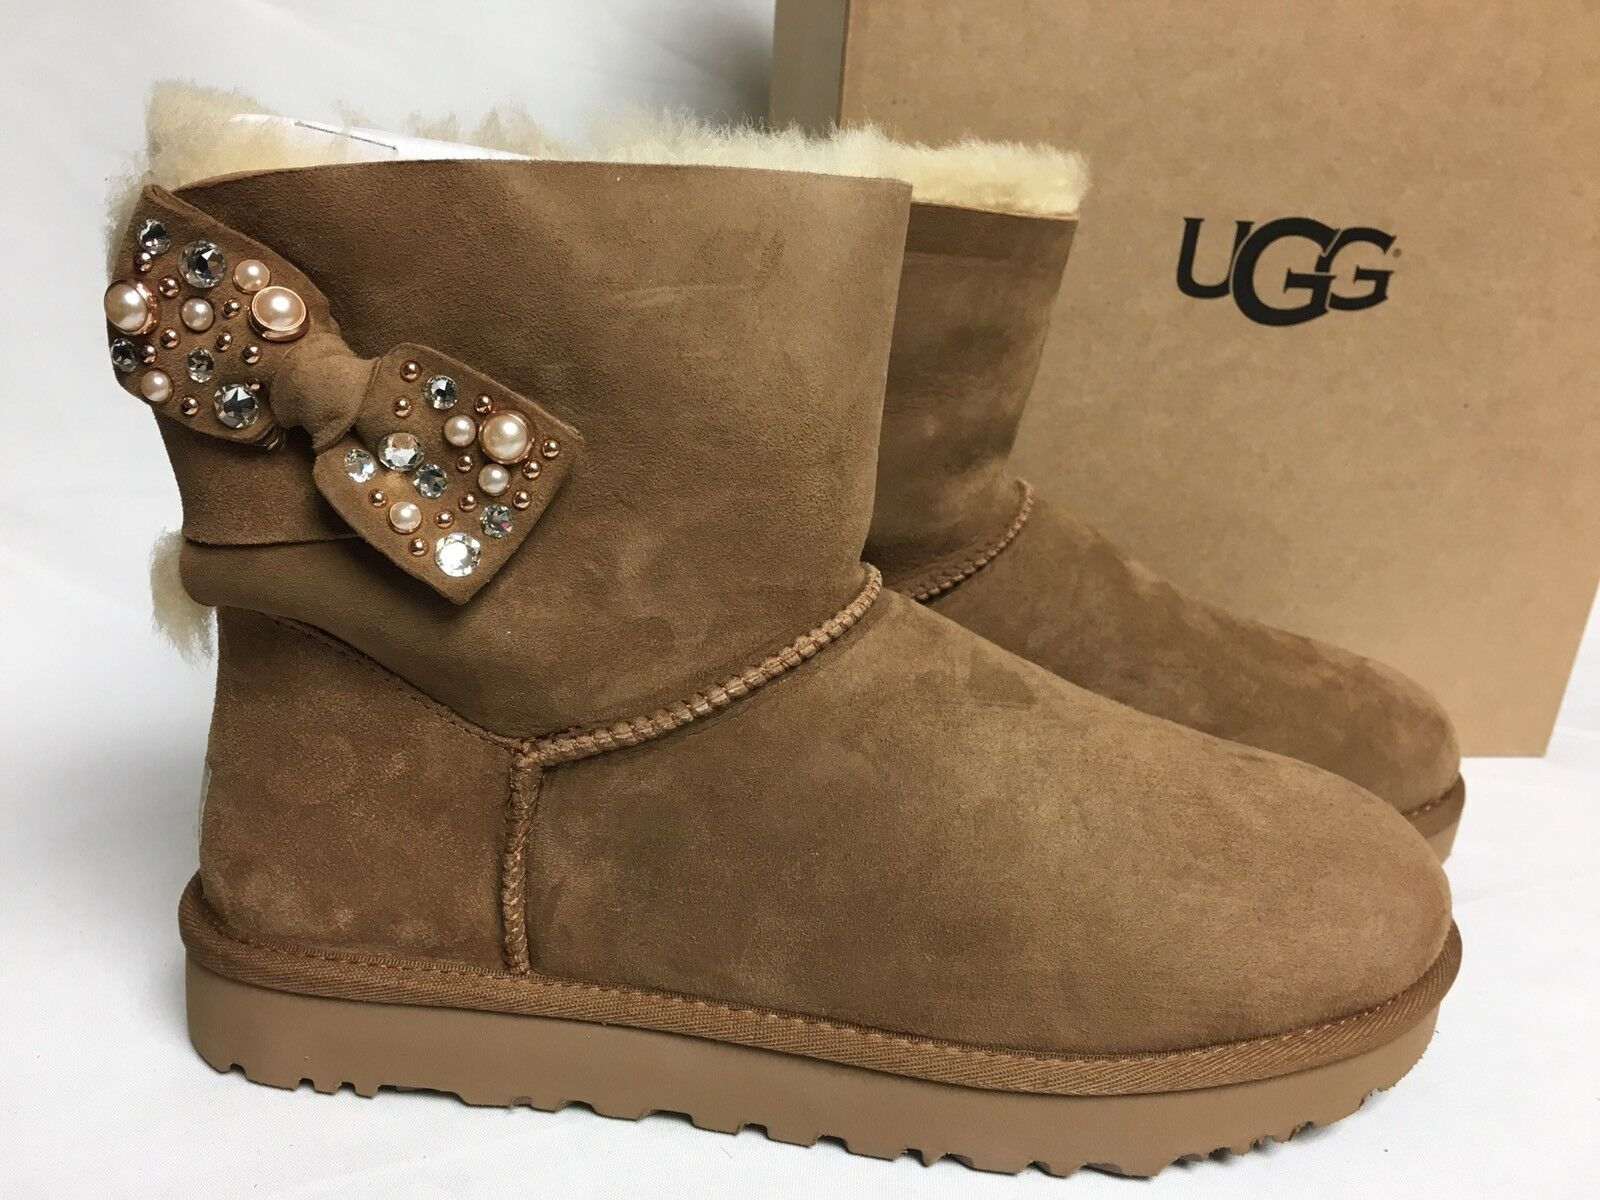 5c6ef86a9d2 UGG Mini Bailey Bow Brilliant Chestnut Bling Suede Sheepskin BOOTS Size 10  US